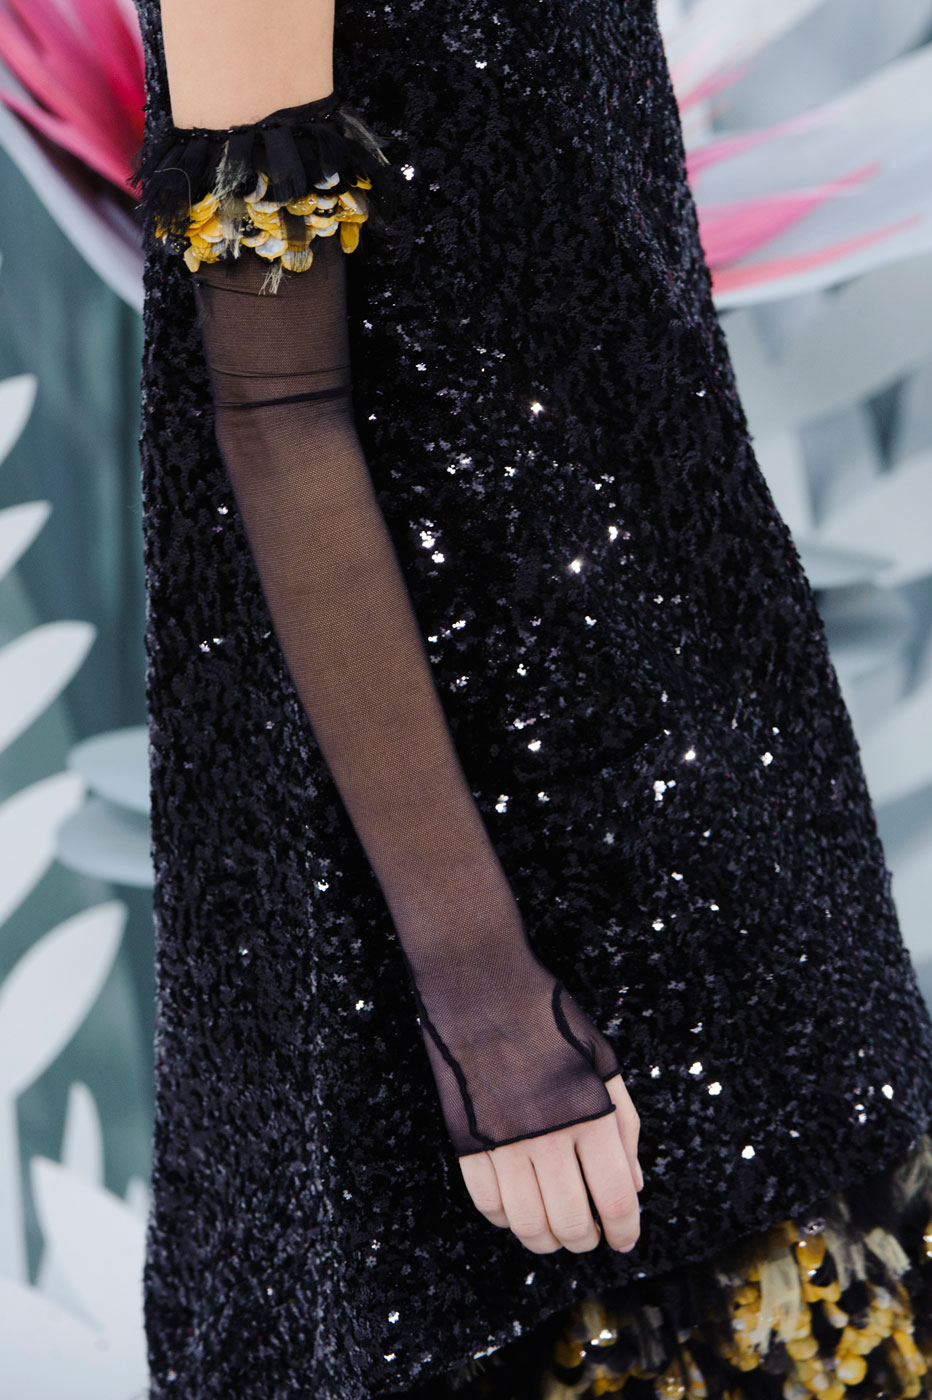 Chanel-fashion-runway-show-close-ups-haute-couture-paris-spring-summer-2015-the-impression-106